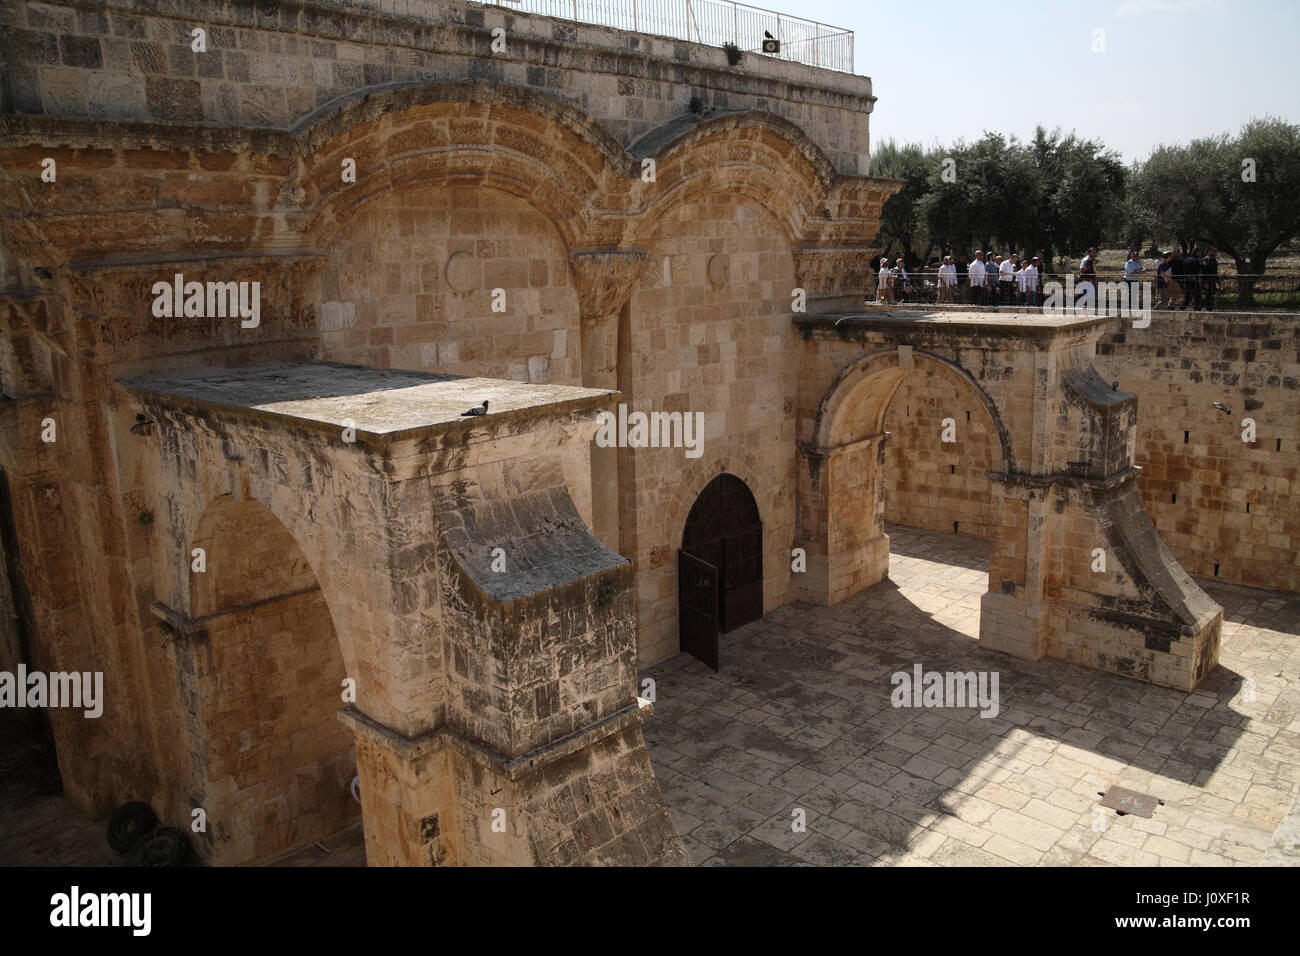 The Golden Gate seen from inside the Temple Mount, Messiah, Jesus and Muhammad will enter Jerusalem here, the structure - Stock Image